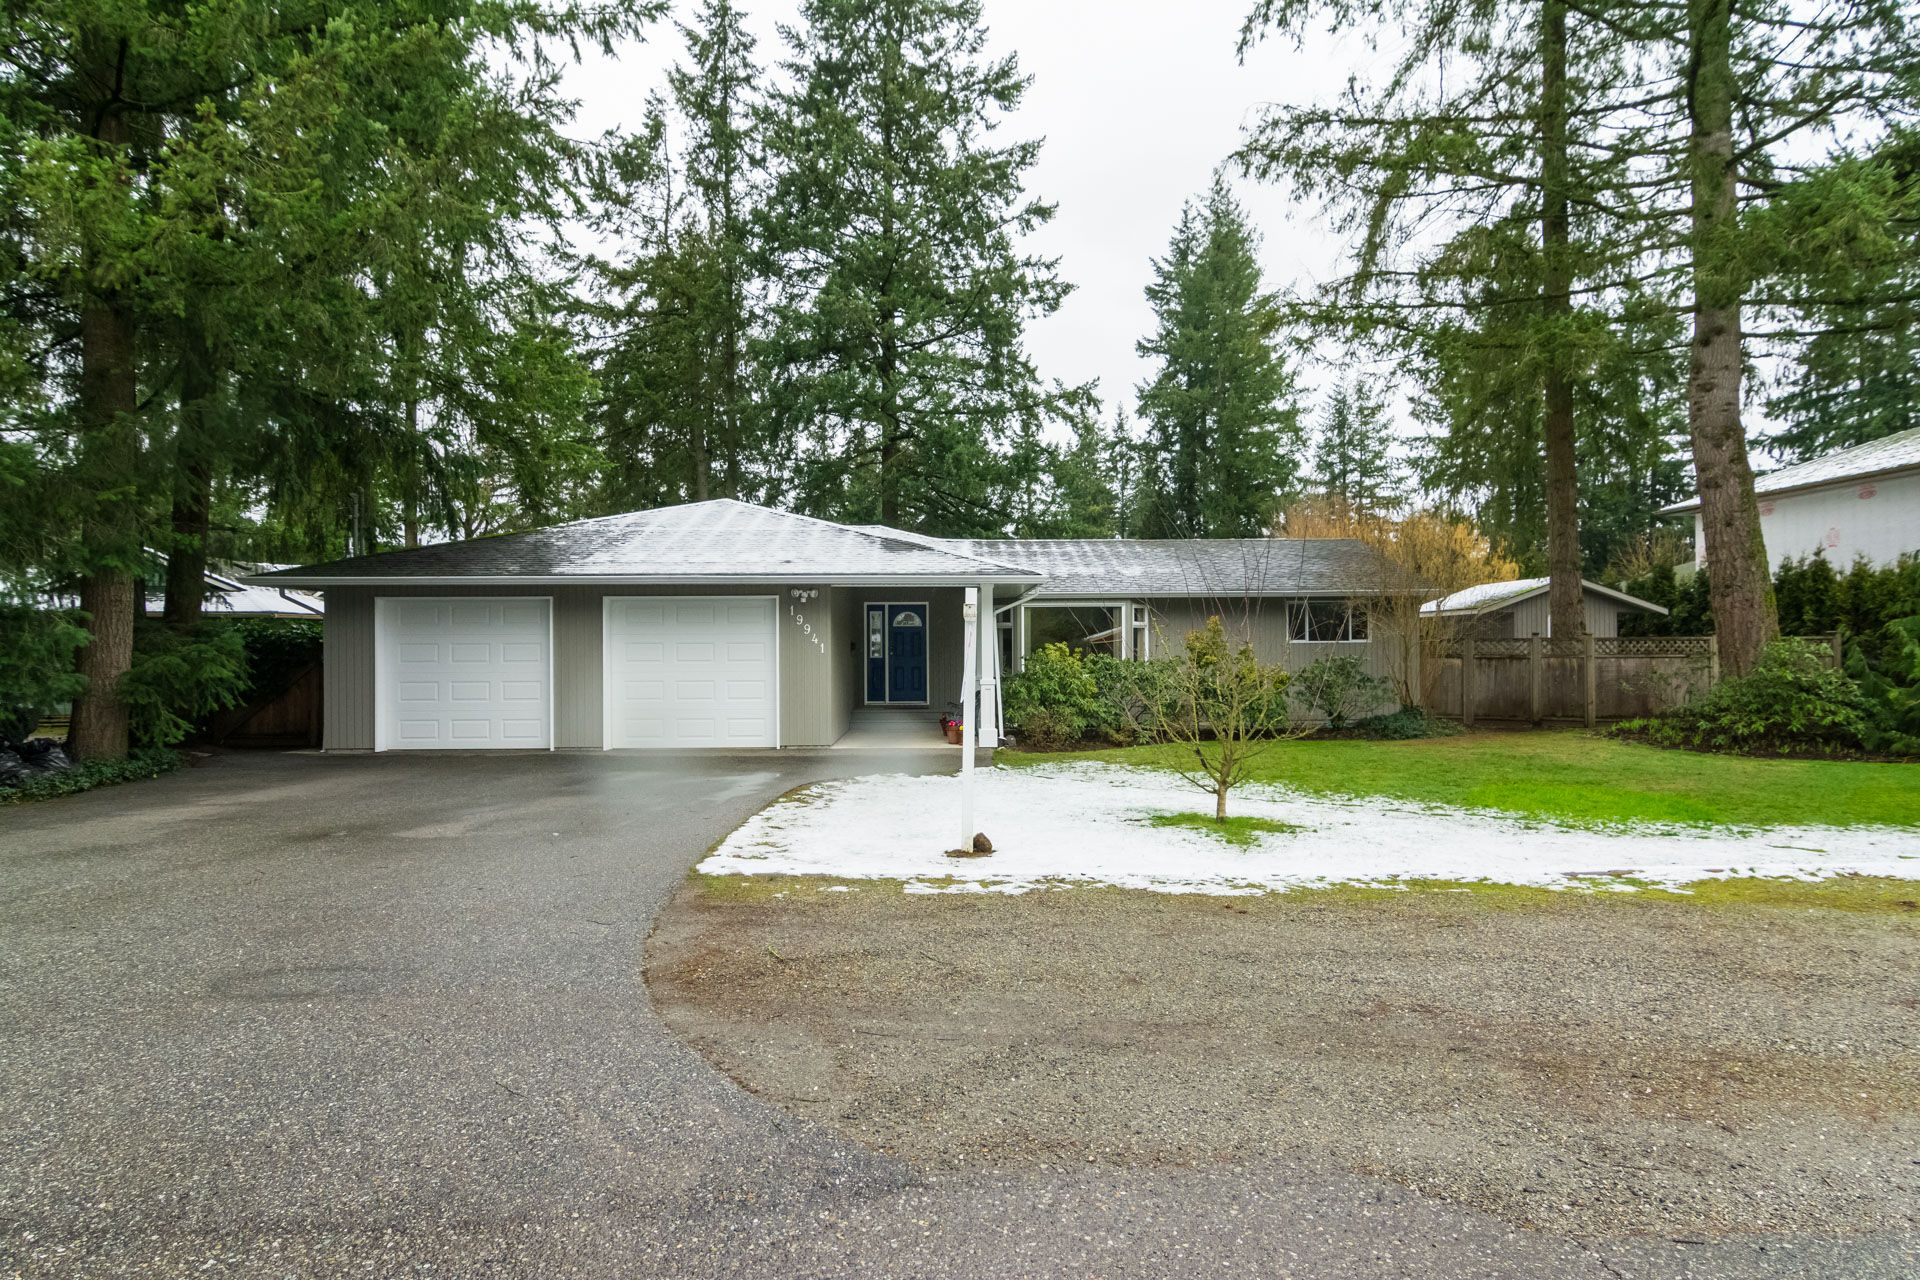 """Photo 2: Photos: 19941 37 Avenue in Langley: Brookswood Langley House for sale in """"Brookswood"""" : MLS®# R2240474"""